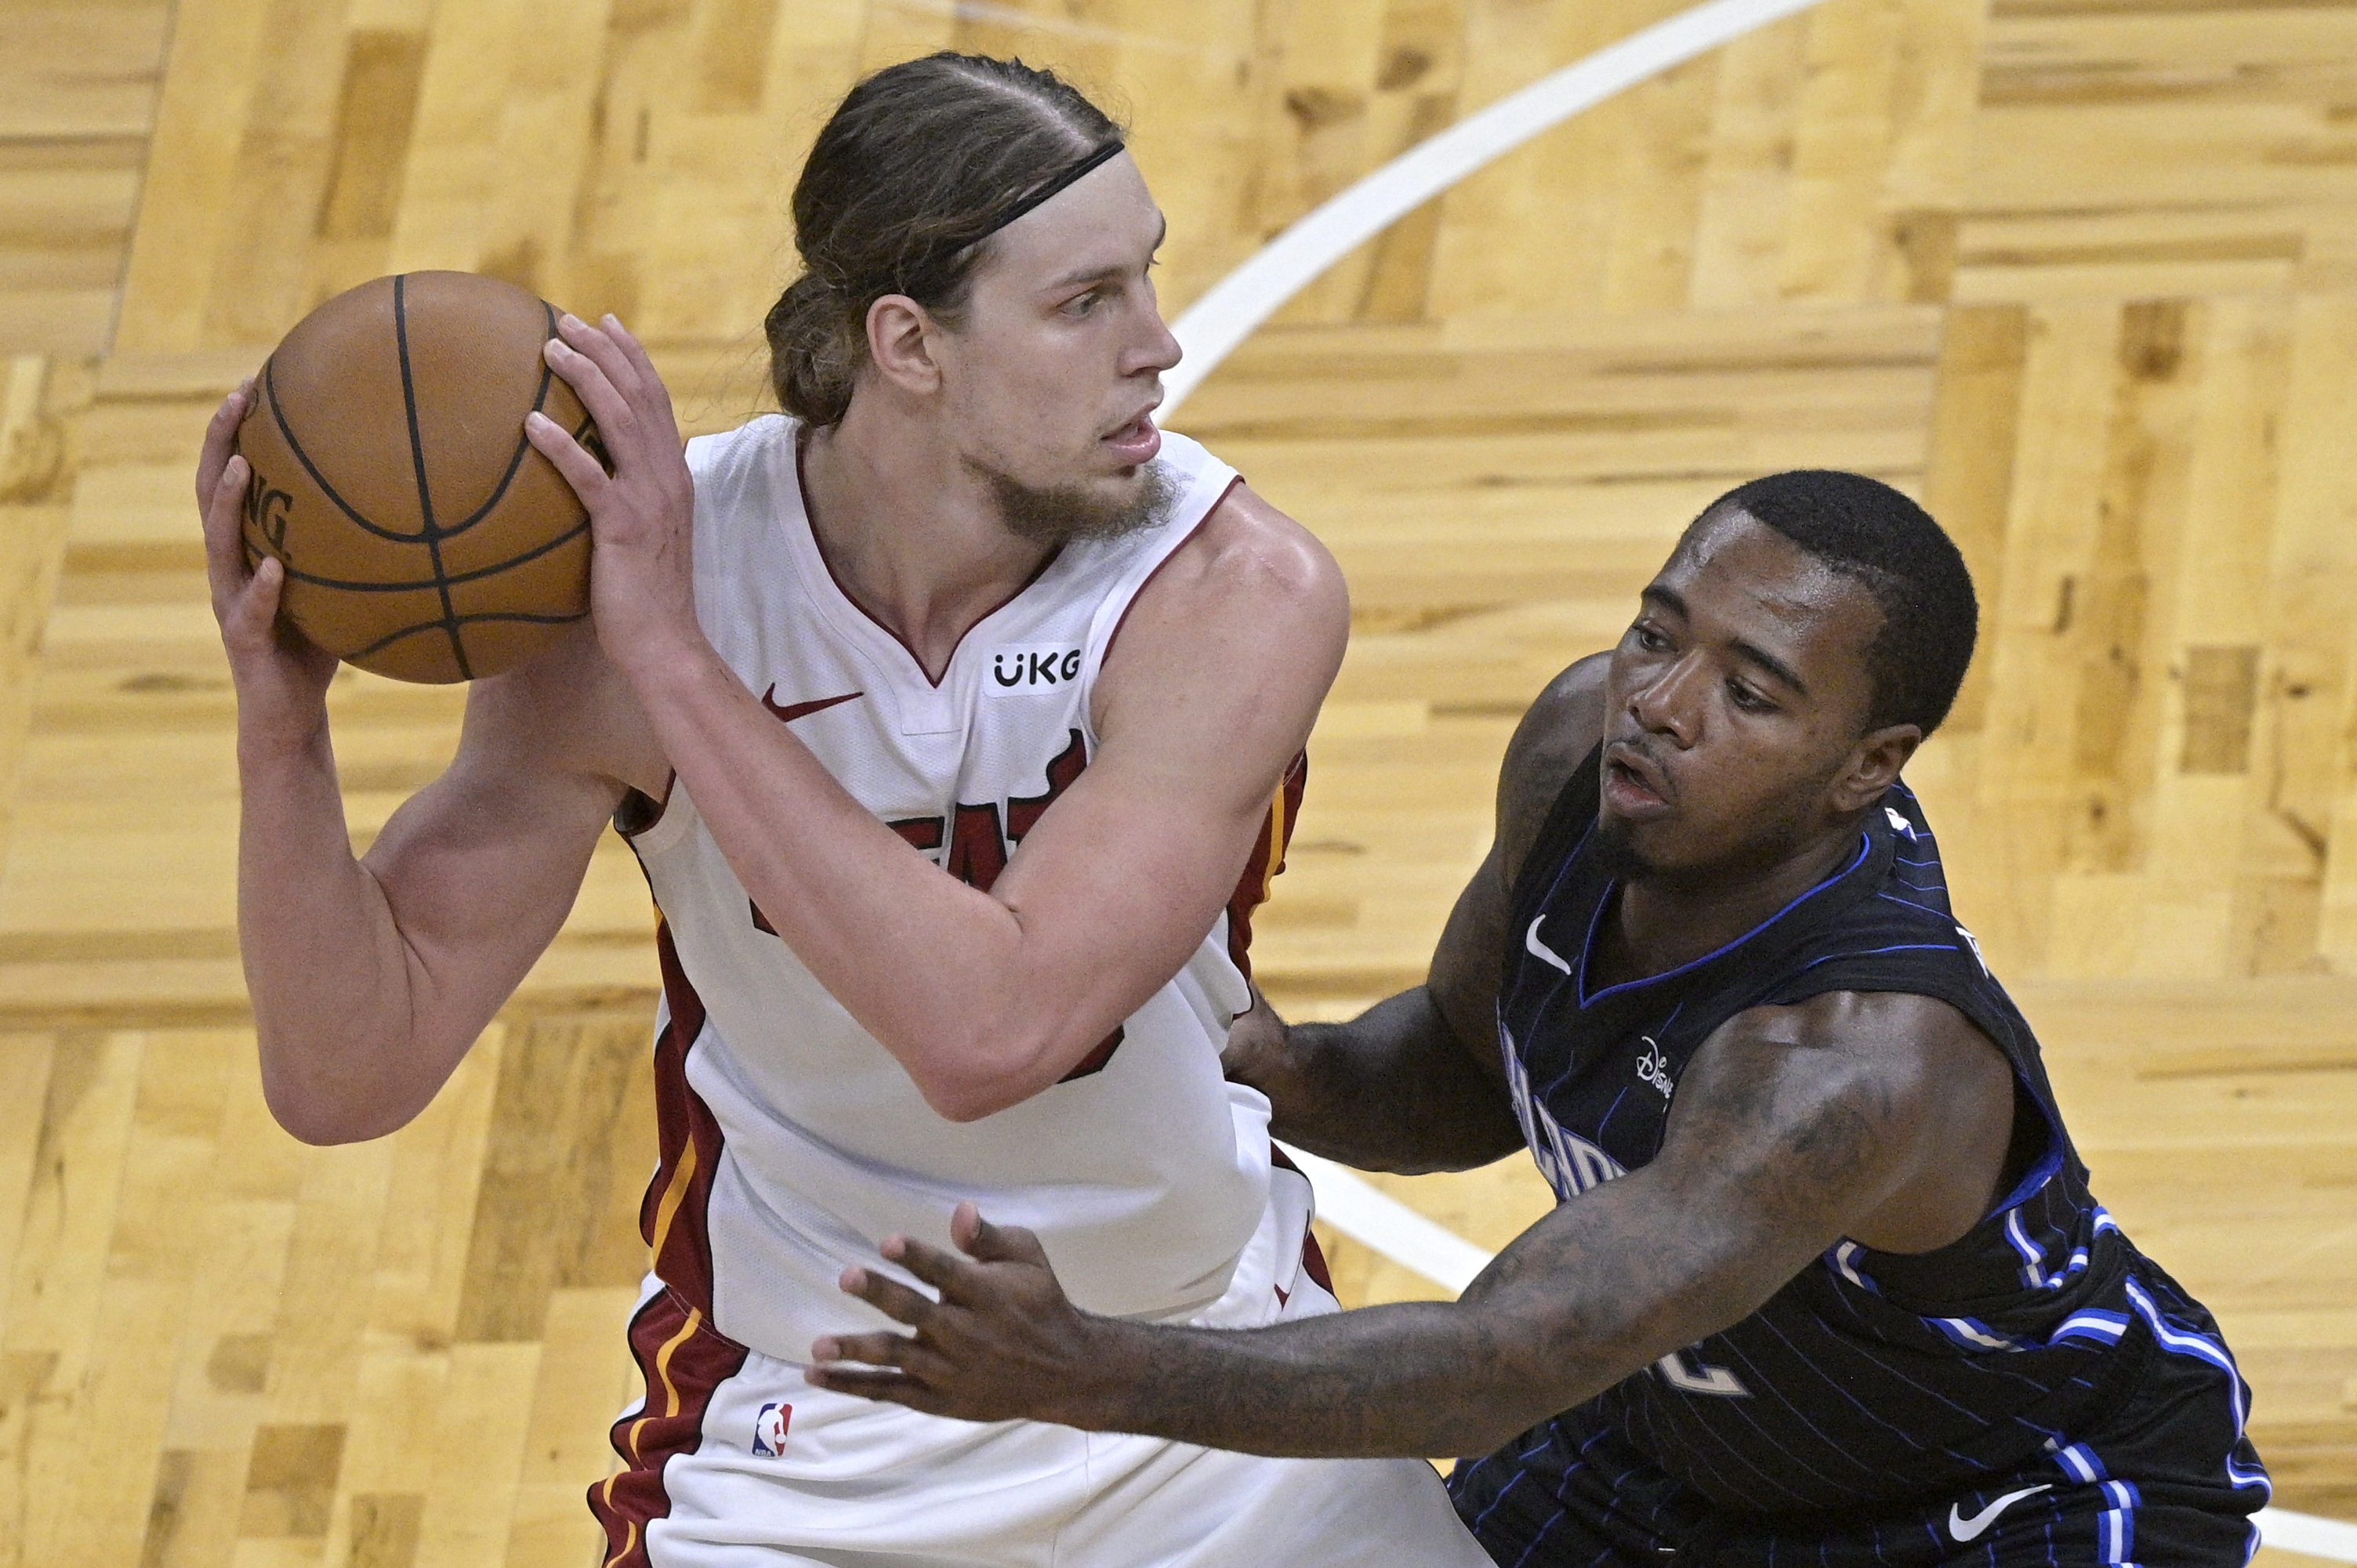 Former Celtic Kelly Olynyk is averaging 10 points and 6.1 rebounds per game for the Heat this season.